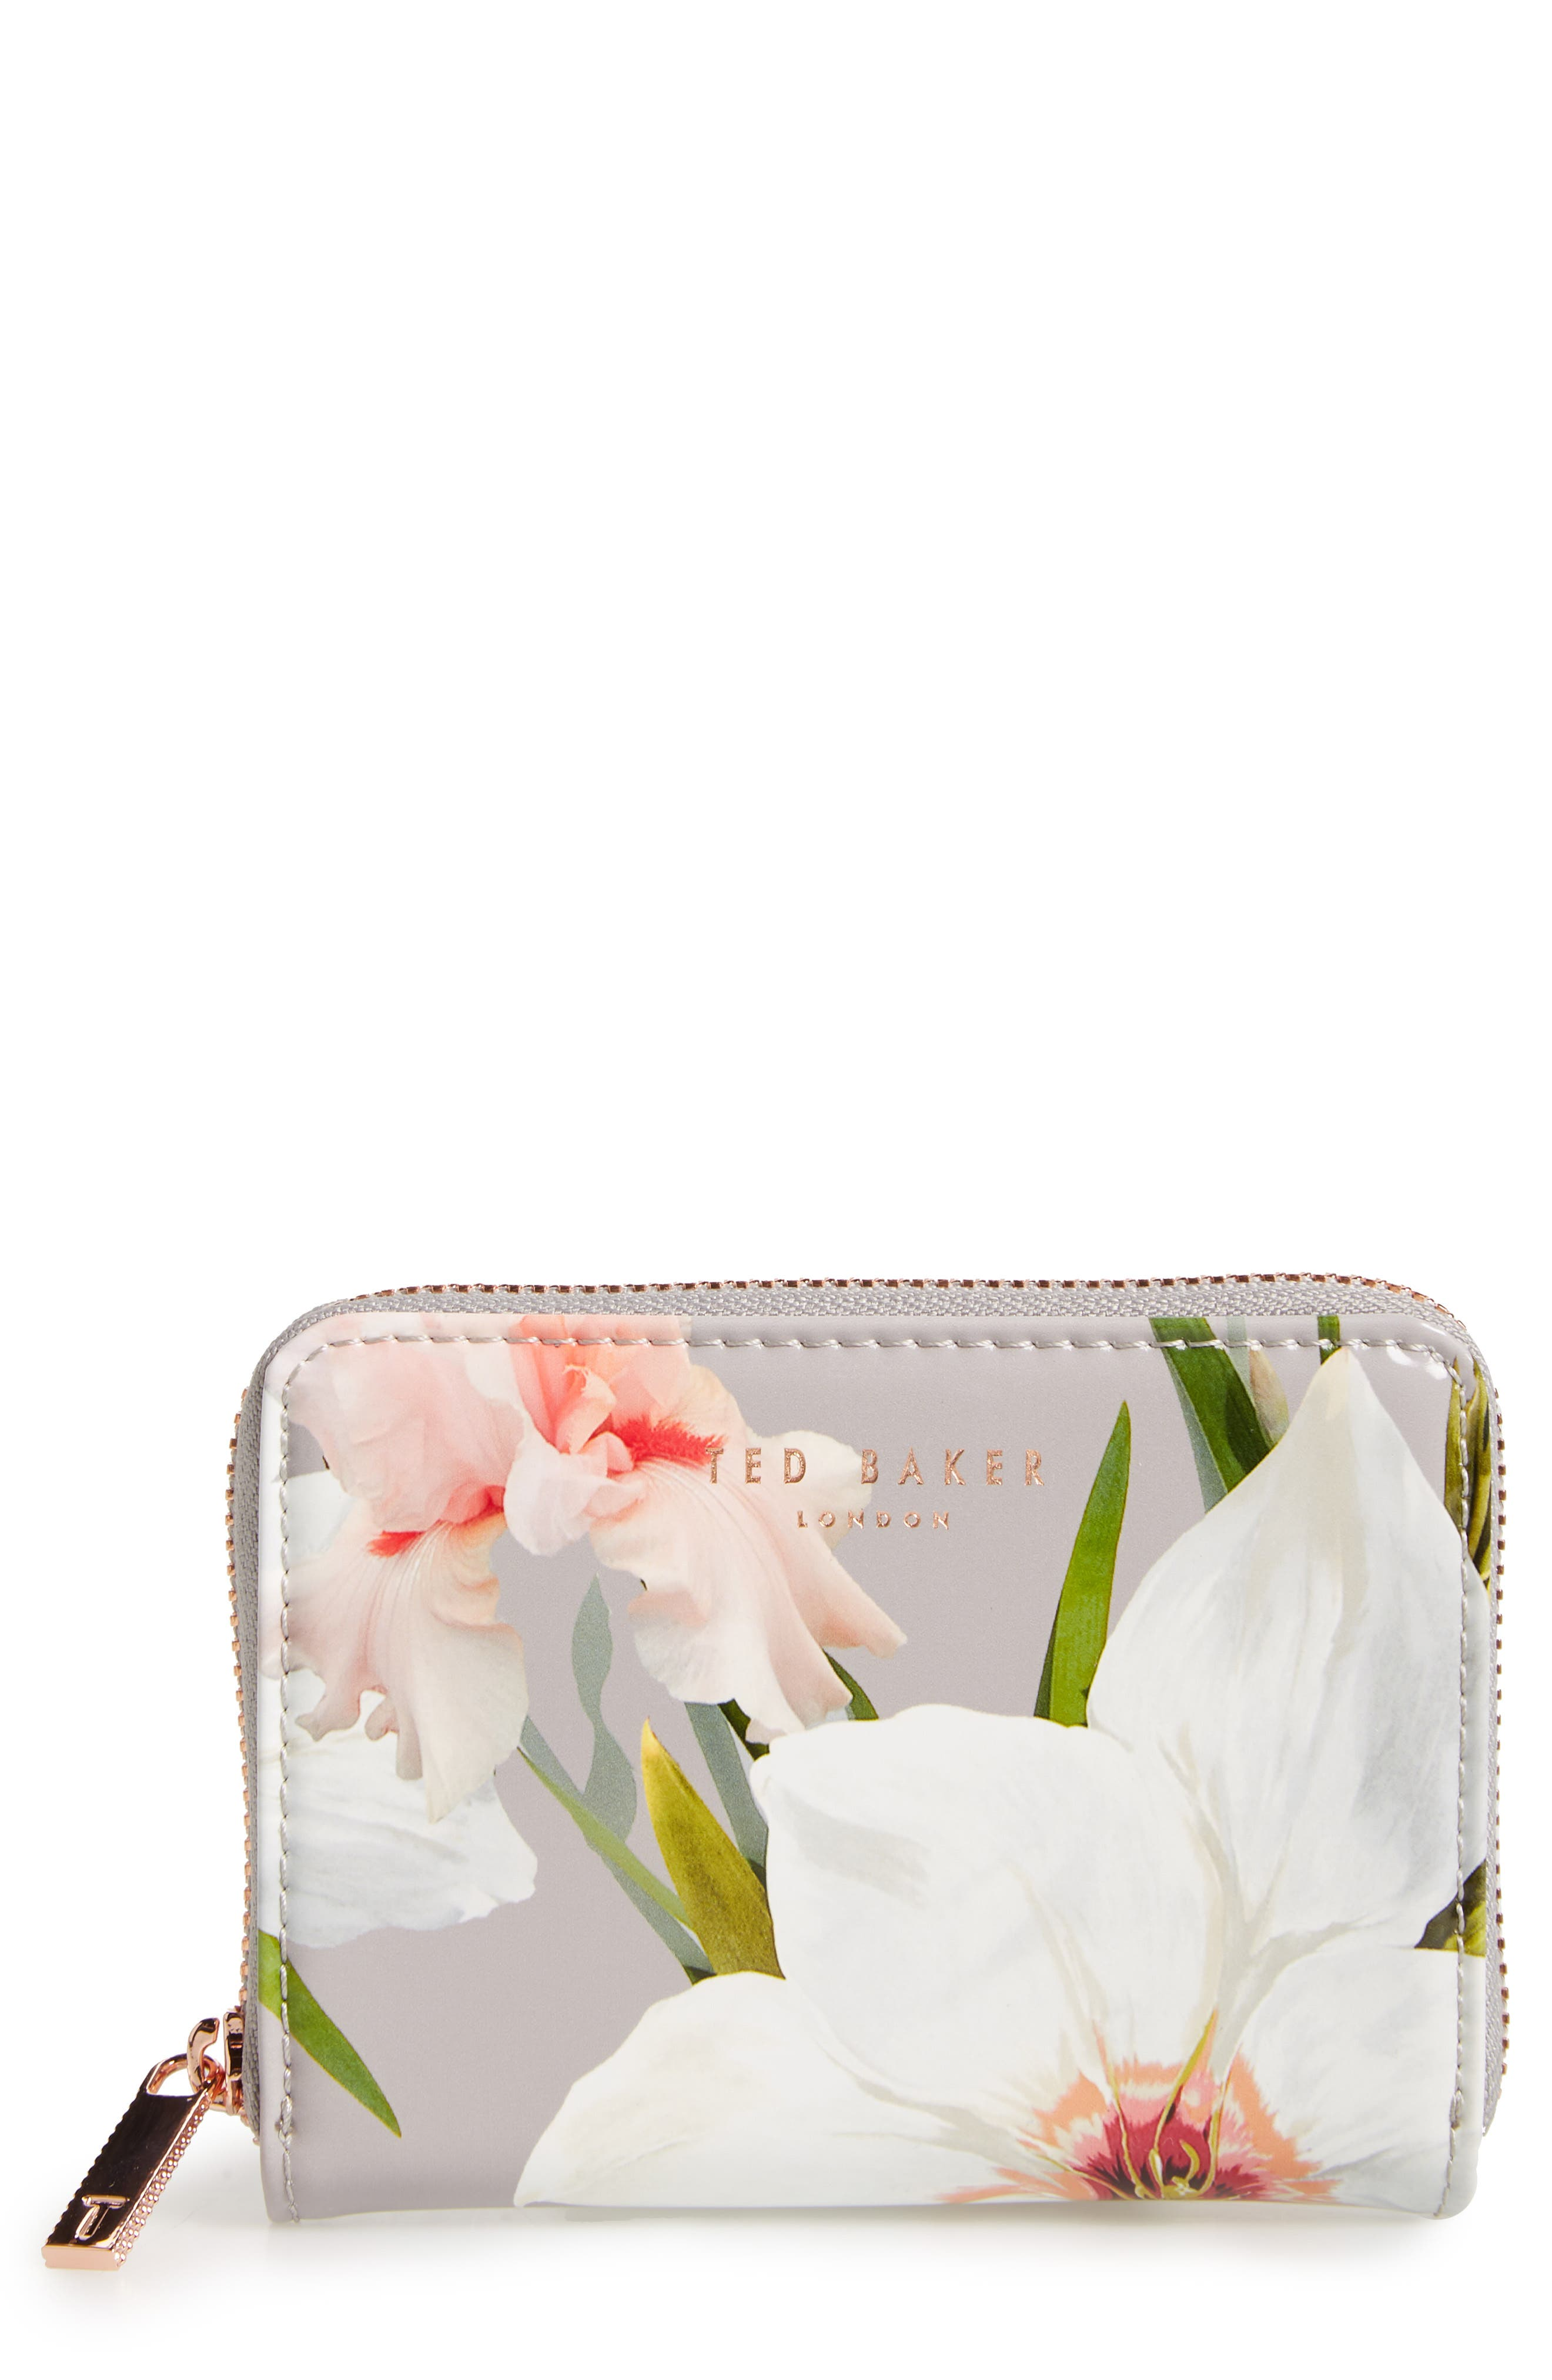 Vallie Chatsworth Bloom Leather Zip Coin Purse,                         Main,                         color, 020